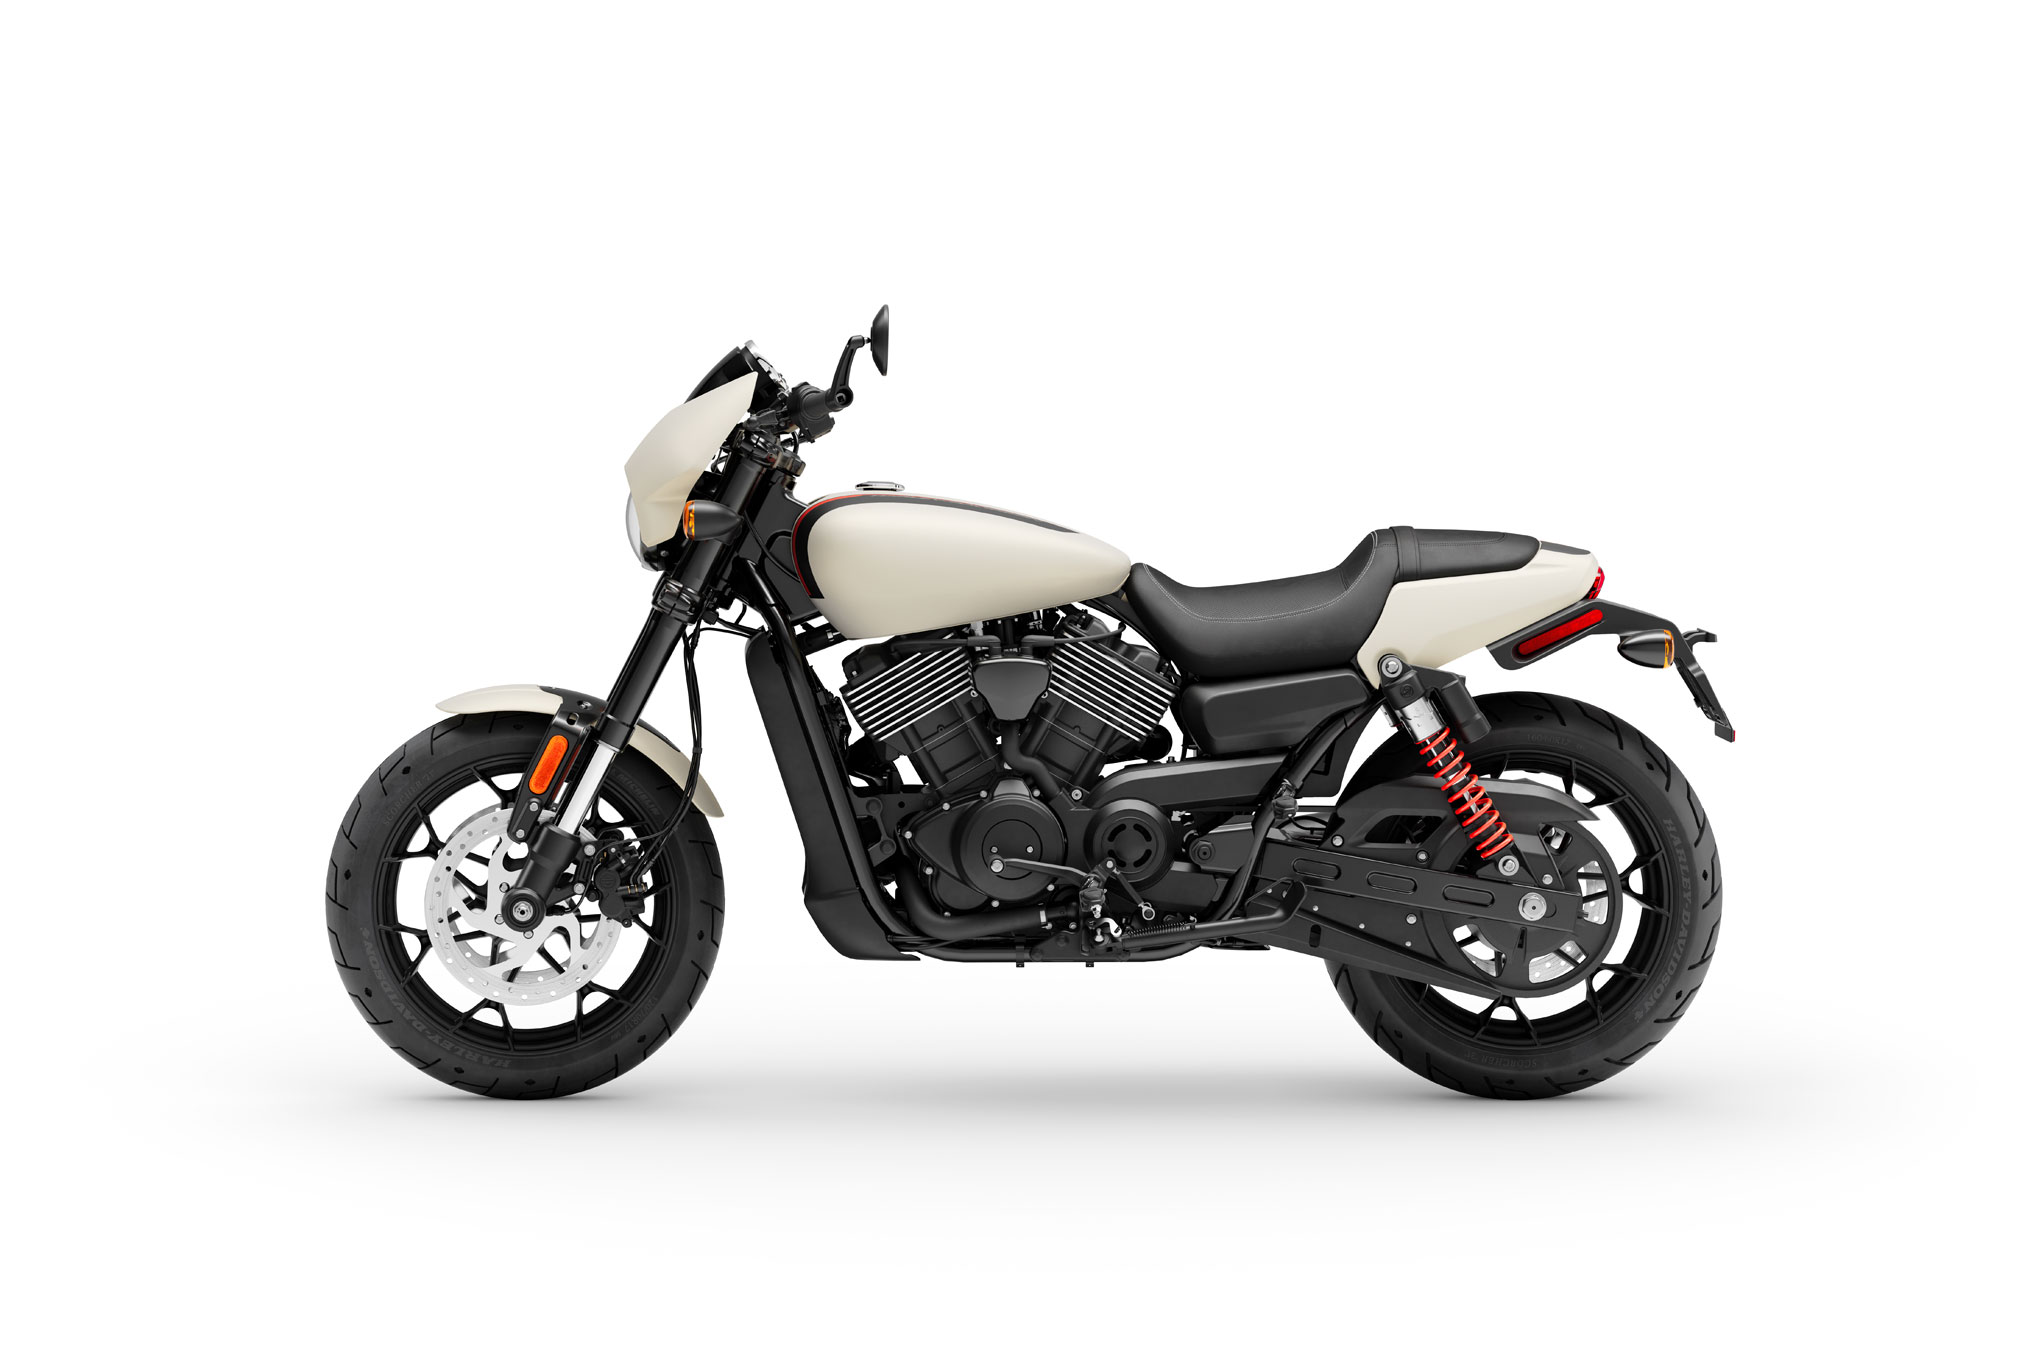 2019 Harley-Davidson Street Rod Guide • Total Motorcycle